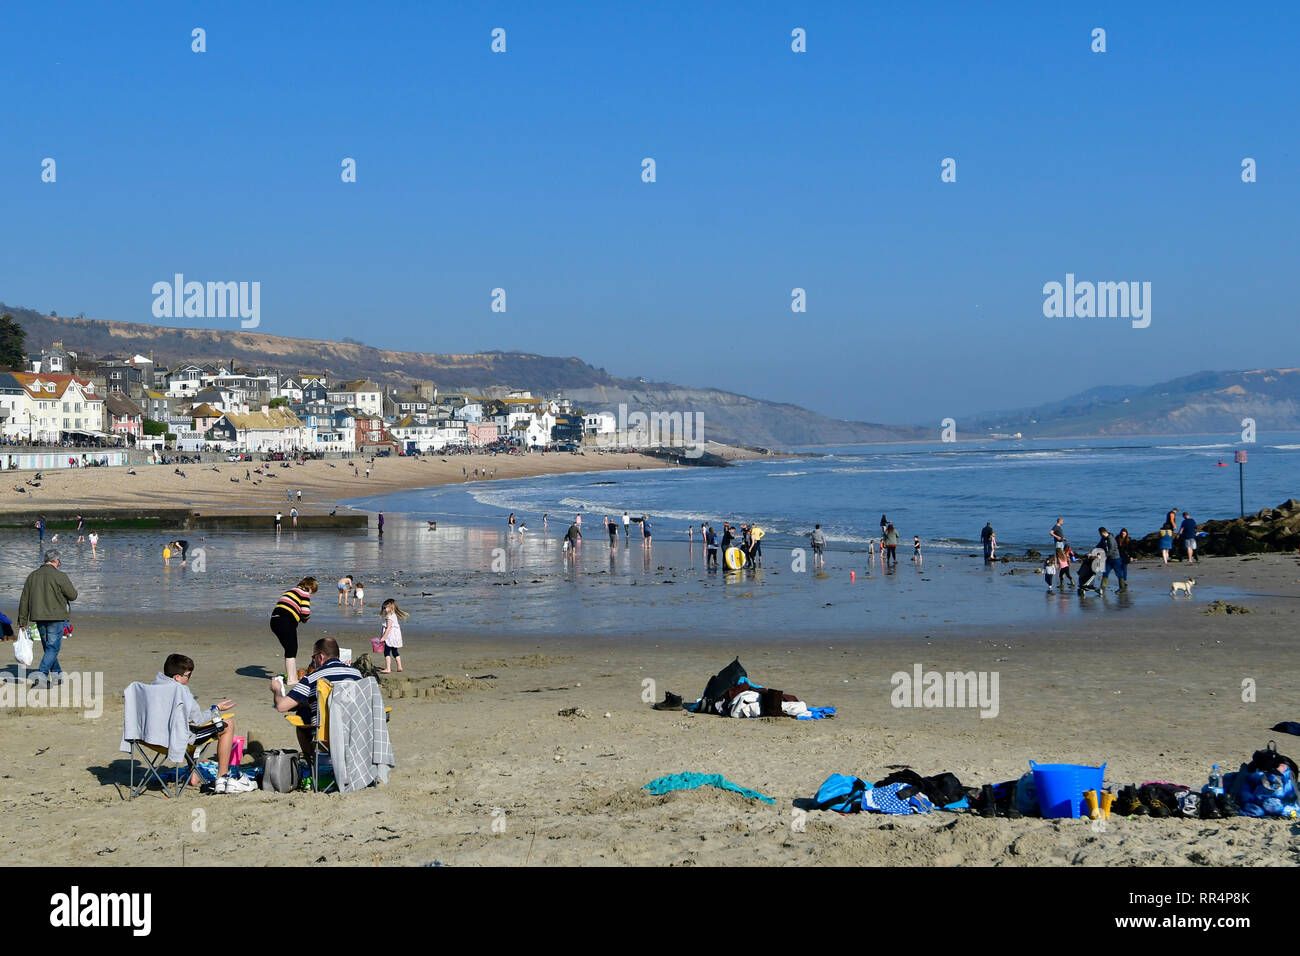 Lyme Regis, Dorset. 24th Feb 2019. UK Weather.Dorset Lyme Regis on the hottest day of the year in February 2019.Thousands of visitors tourist seen at the seaside on a very warm afternoon Credit: Robert Timoney/Alamy Live News - Stock Image